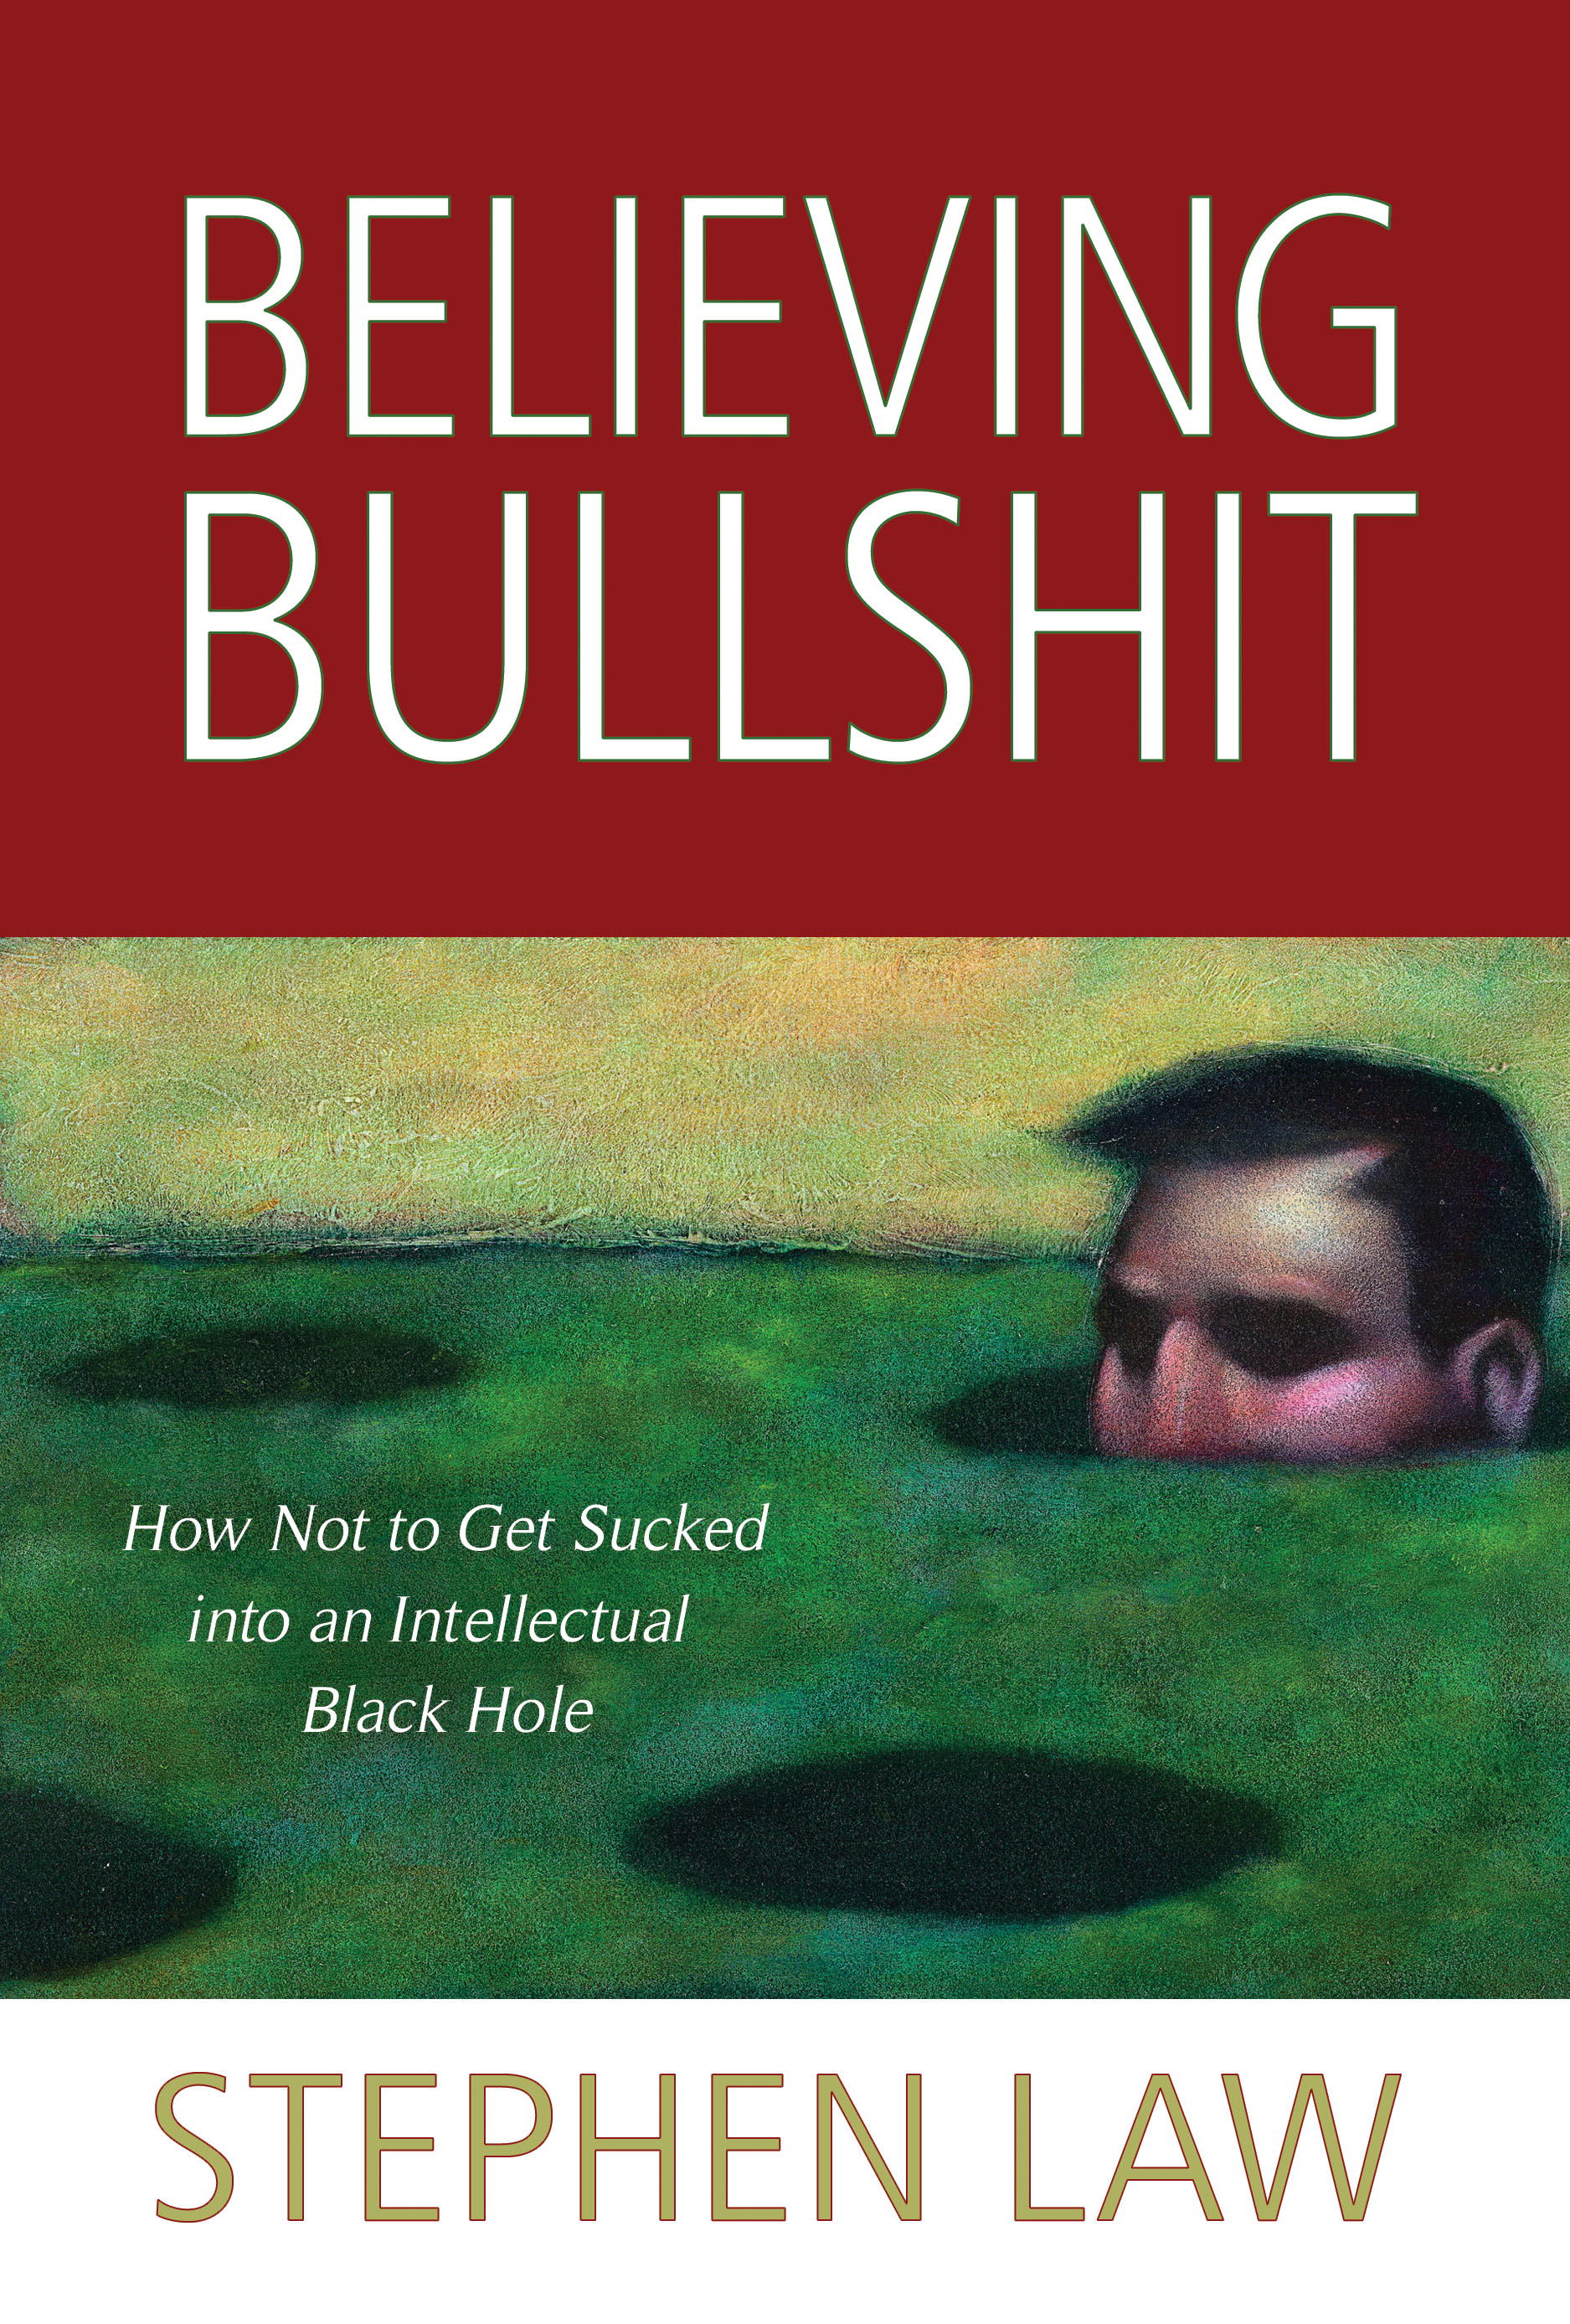 Believing Bullshit